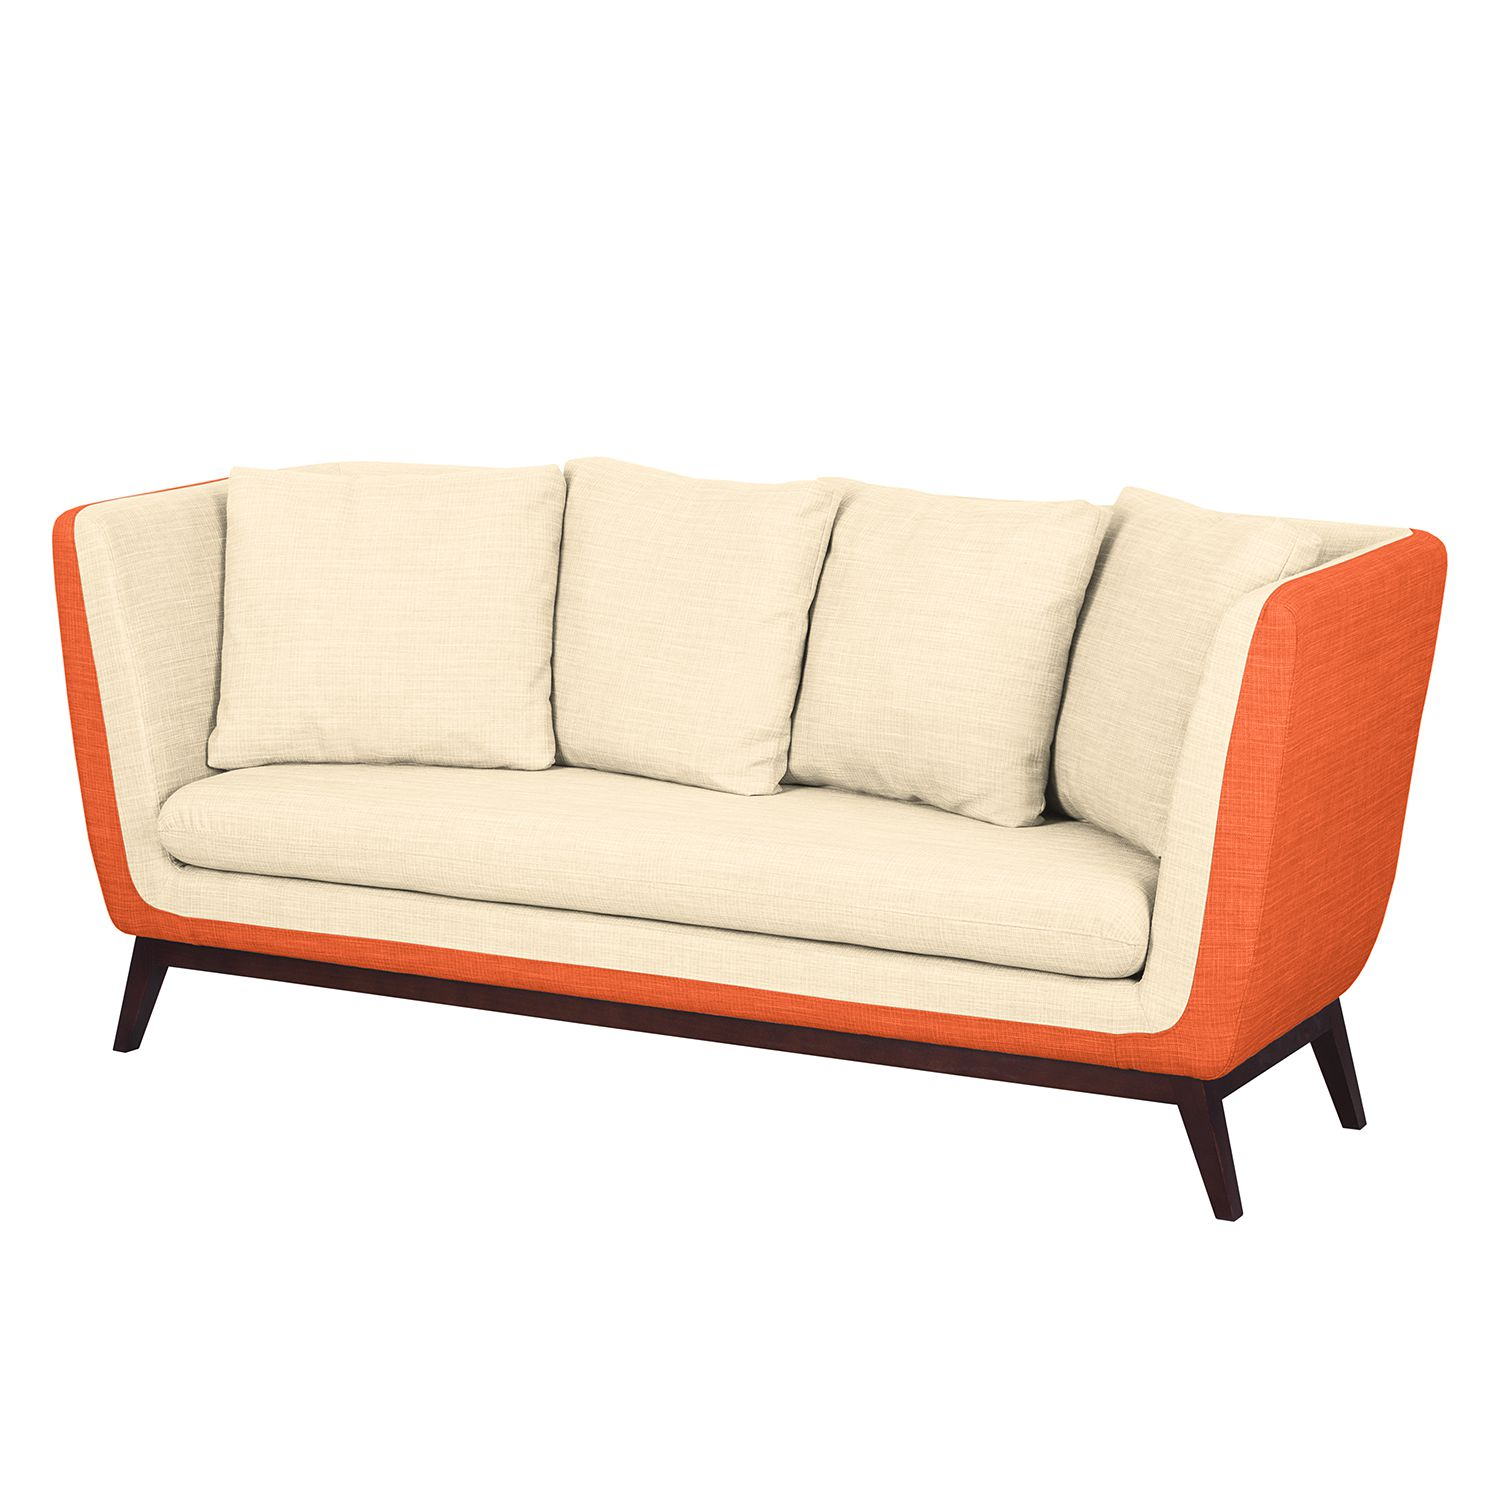 Sofa Sagone (3-Sitzer) - Webstoff - Orange / Cremeweiß, Morteens